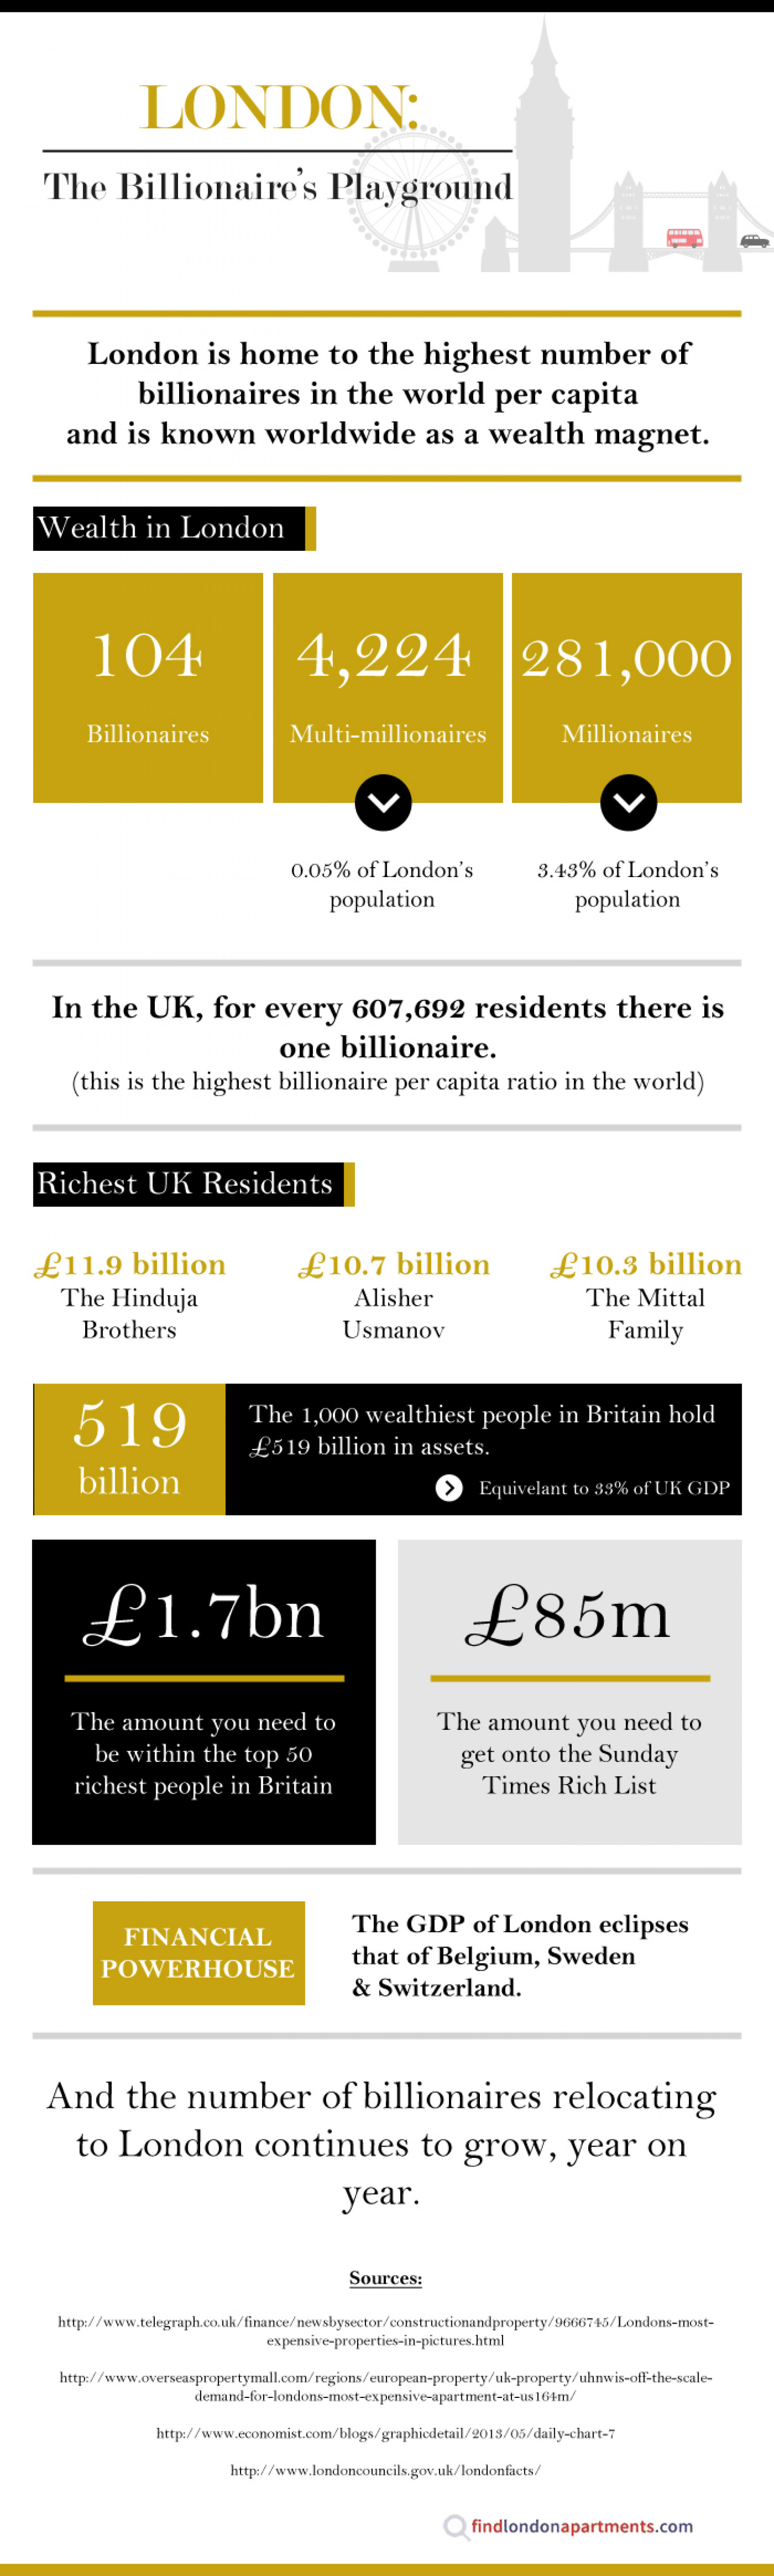 London: The Billionaire